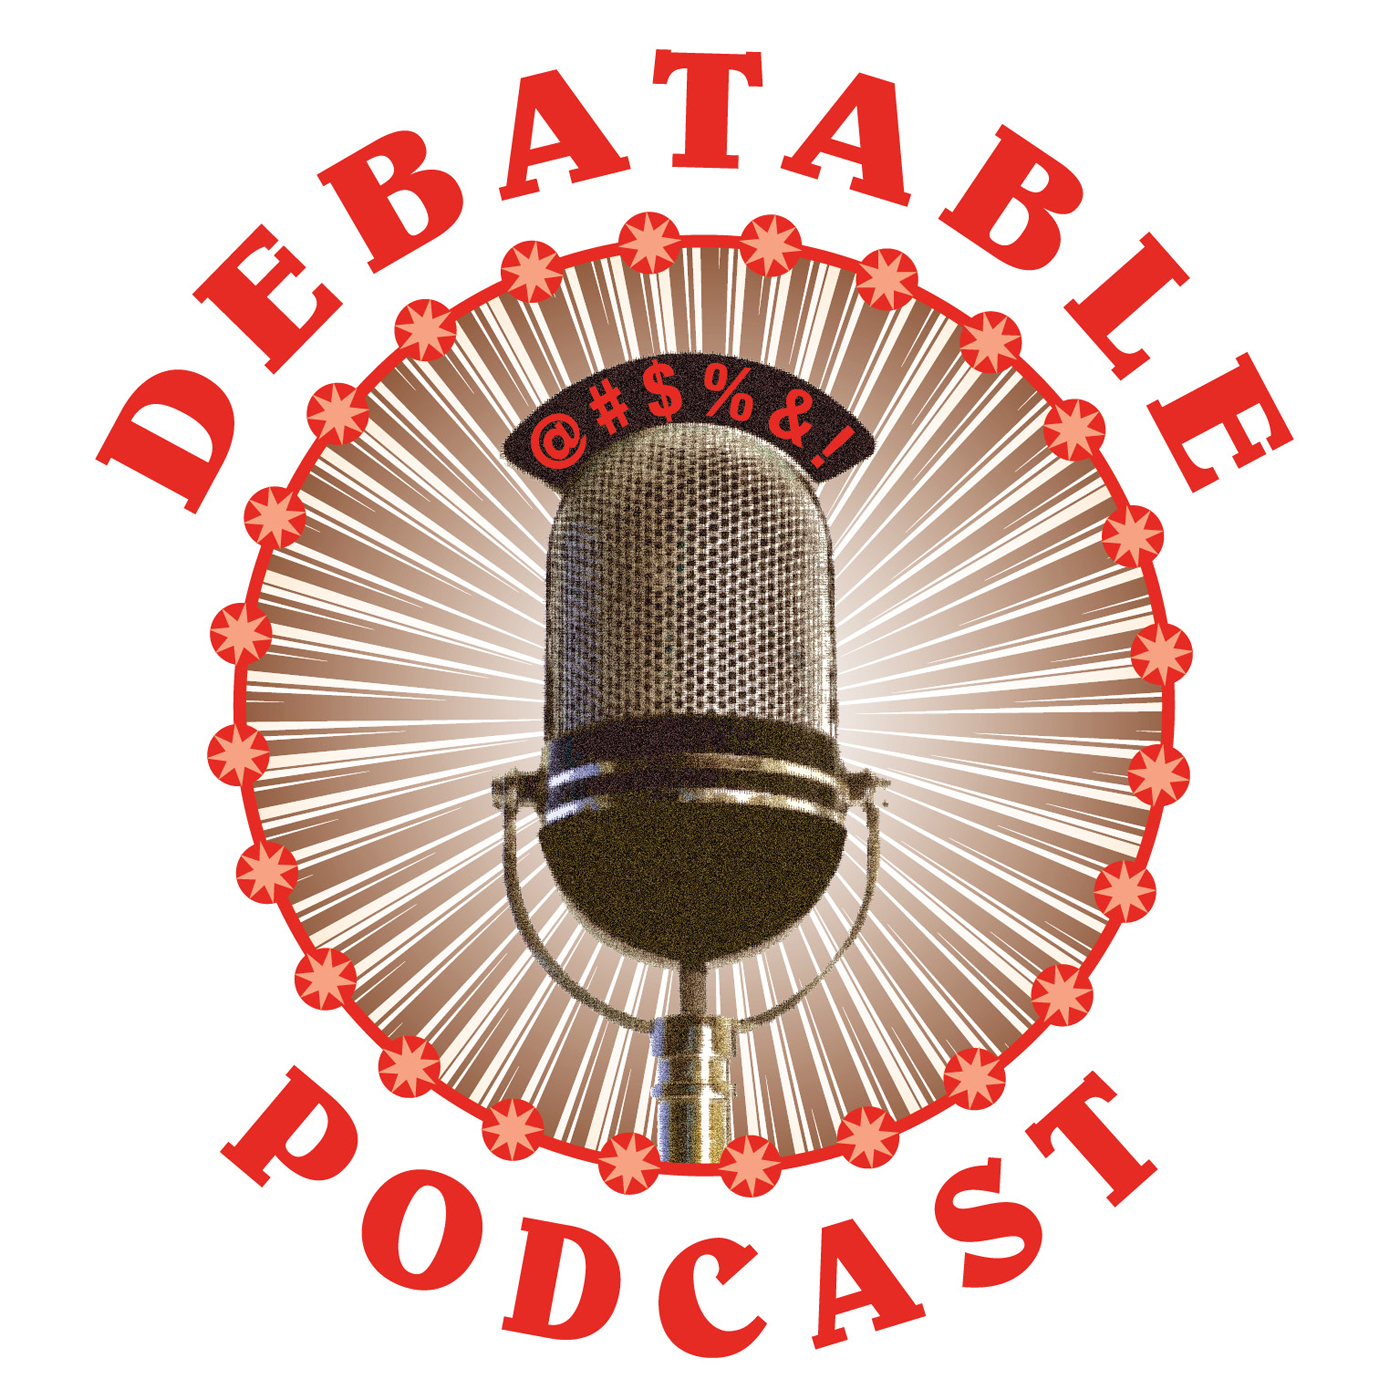 The Debatable Podcast